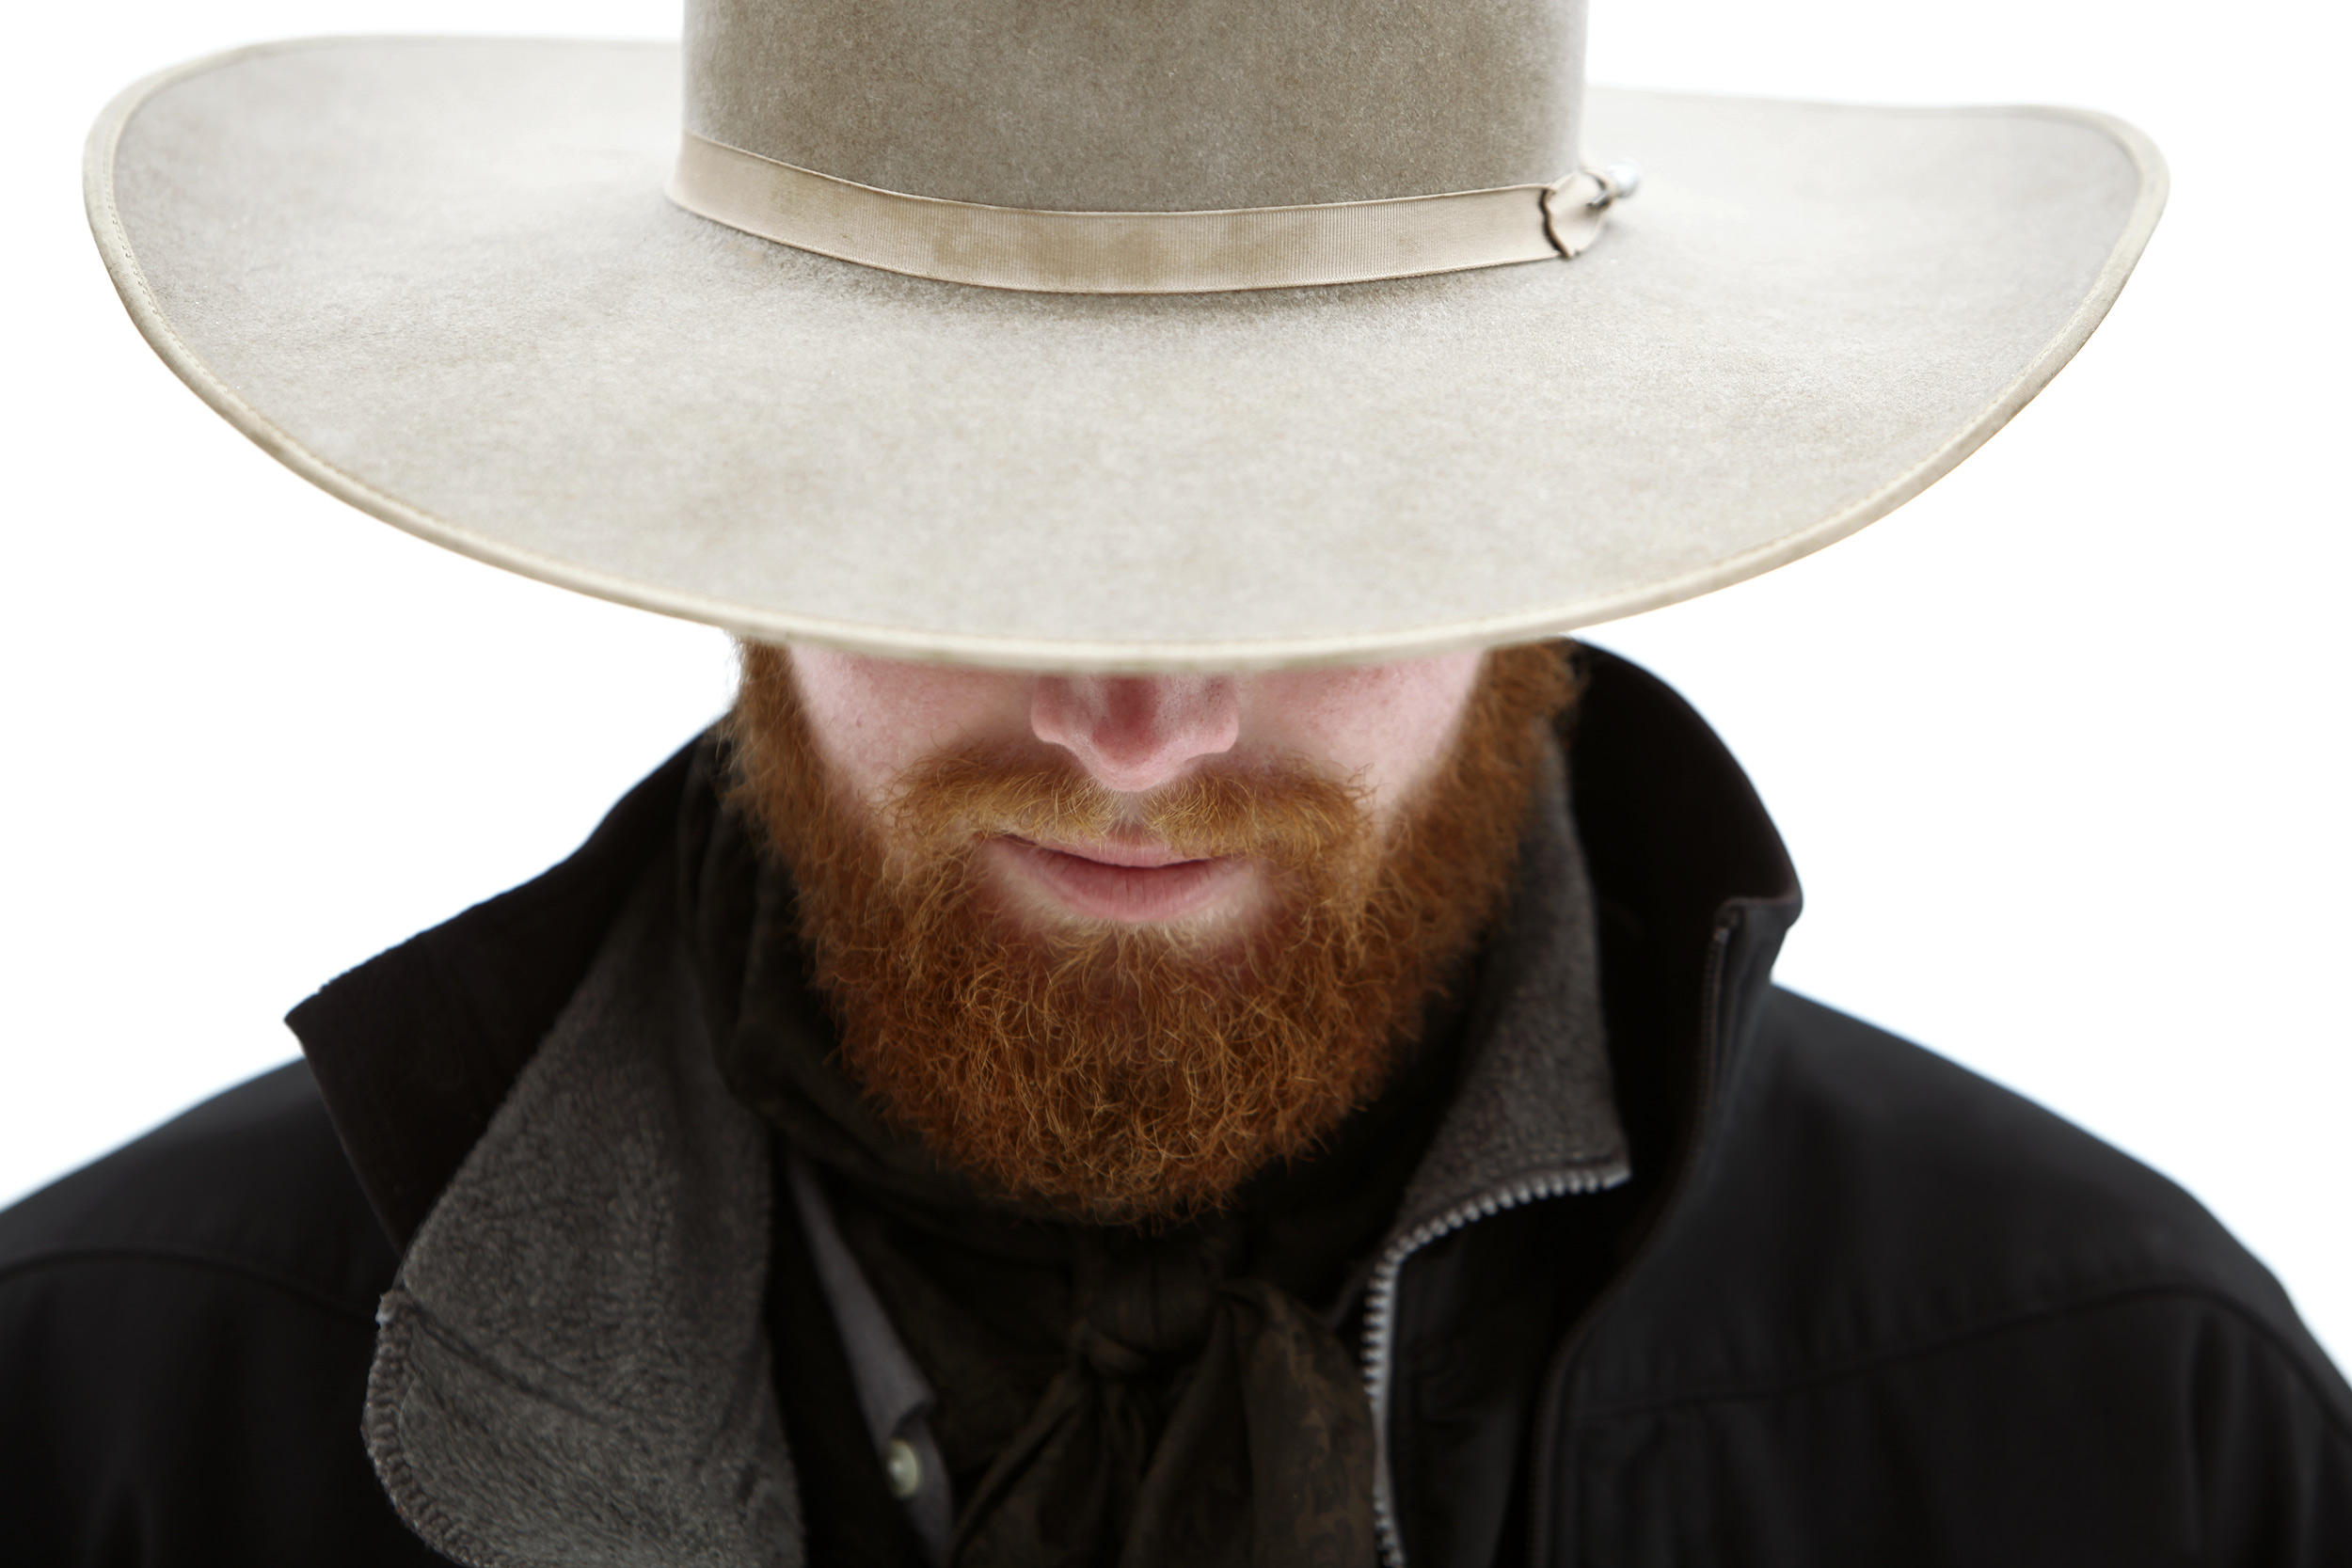 Portrait of a cowboy with a red beard looking down